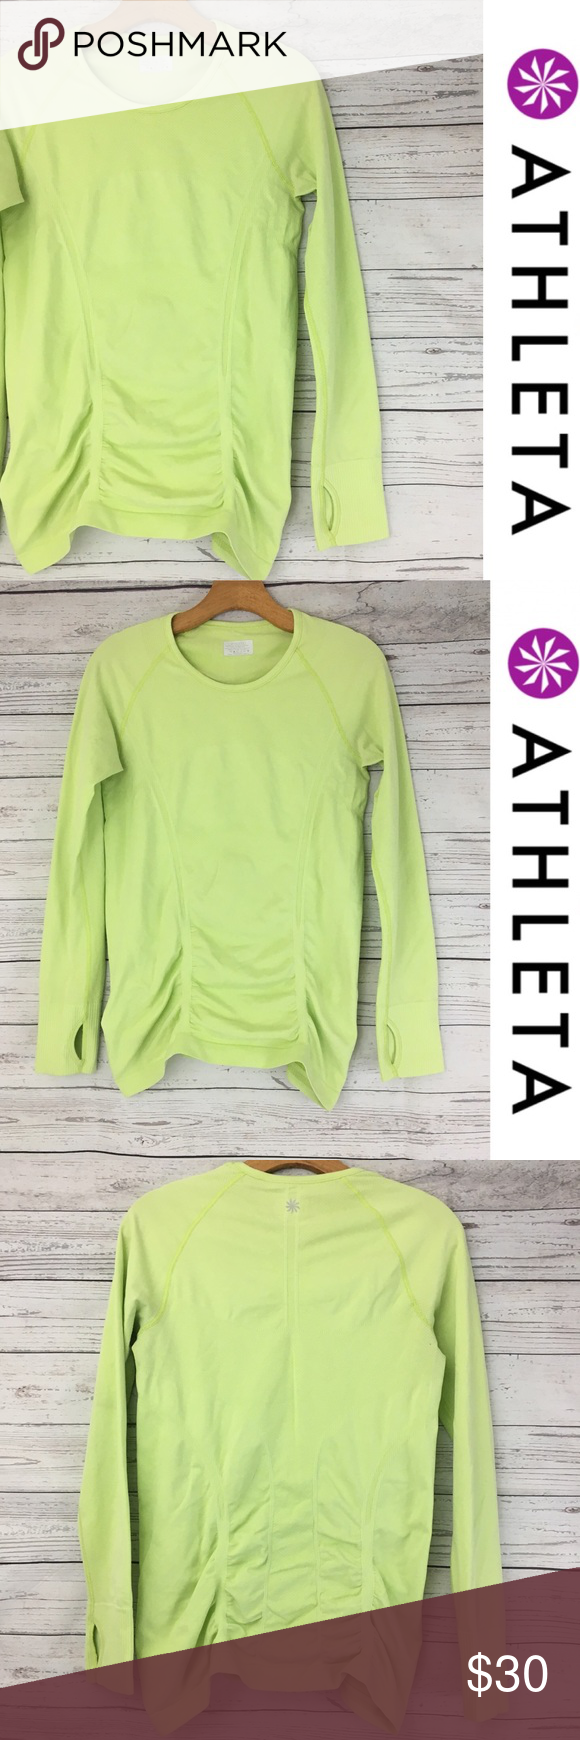 69f37453f7 Athleta fasted track running long sleeve top Super bright and fun Athleta fastest  track top with